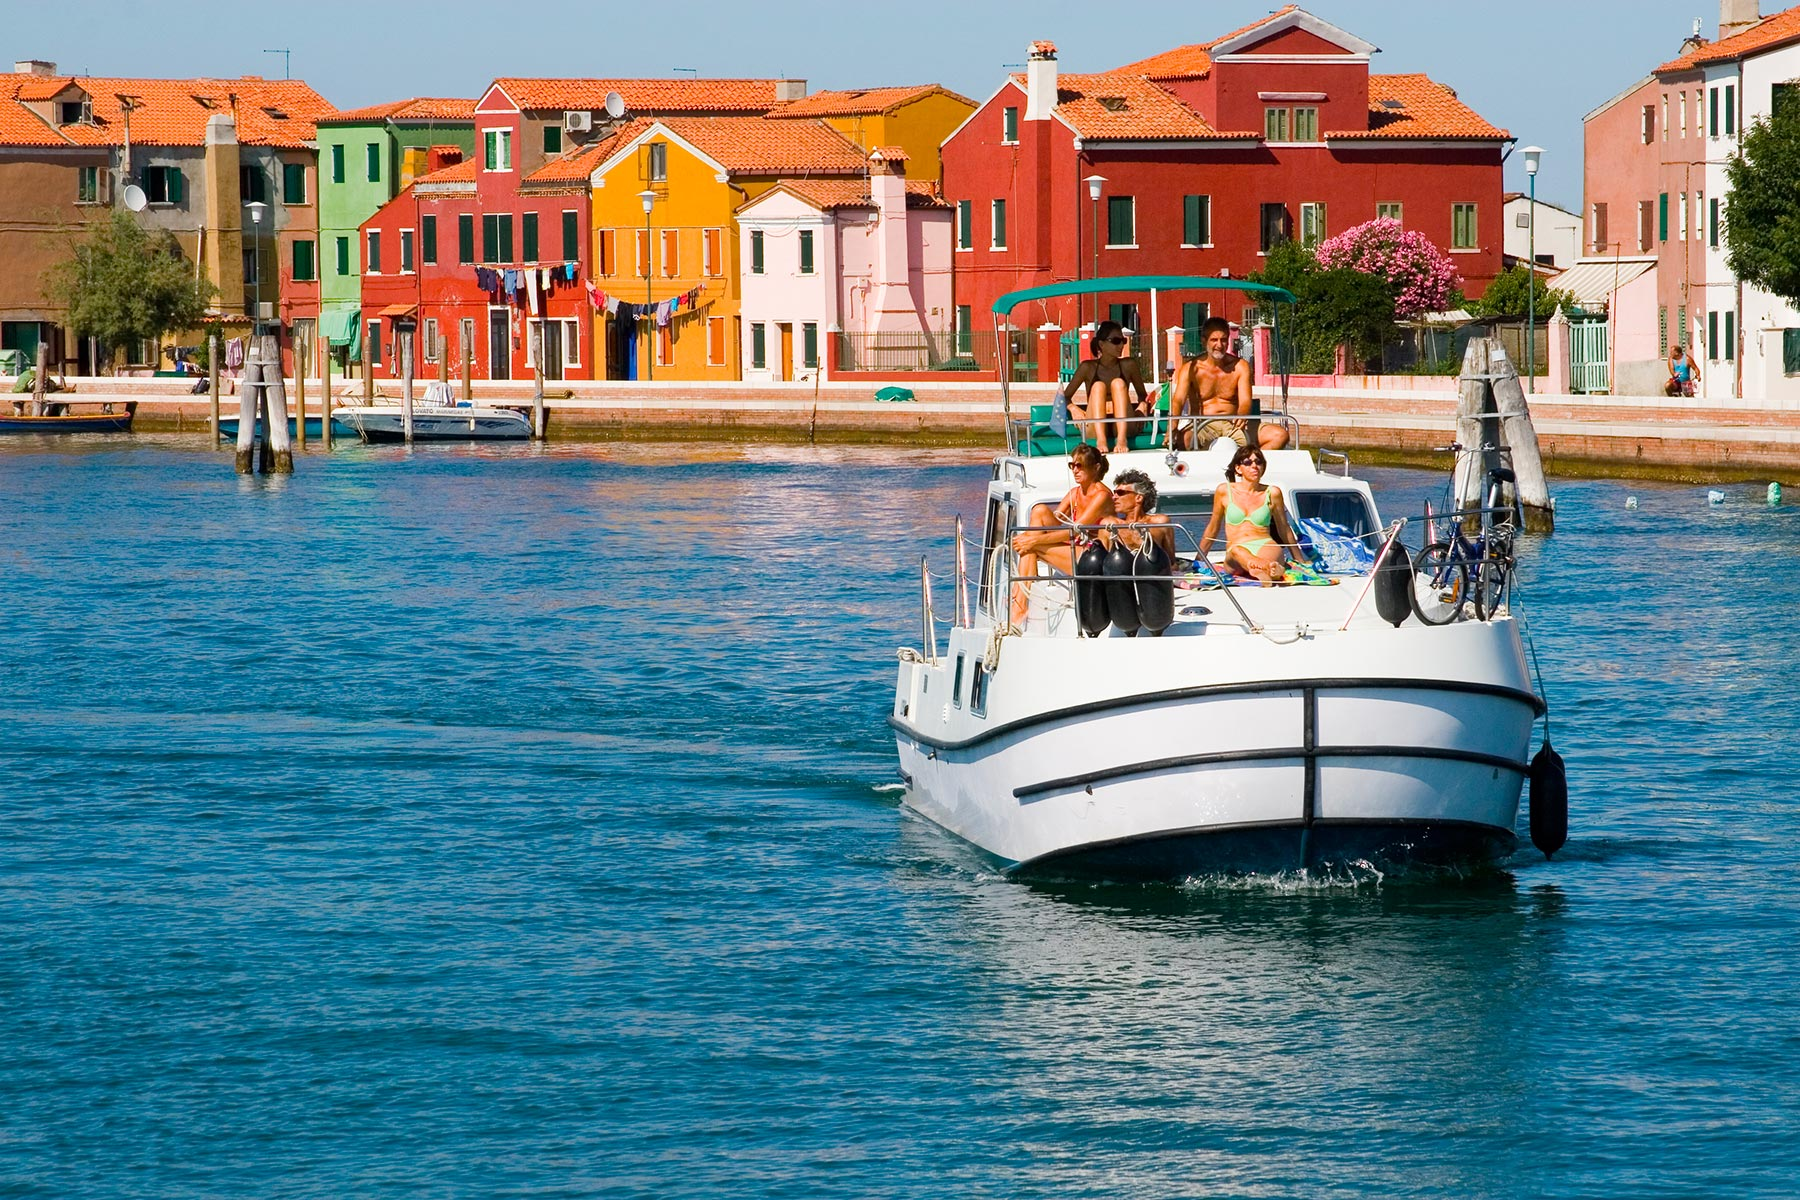 Liveable boat houseboat Burano vacations colorful houses